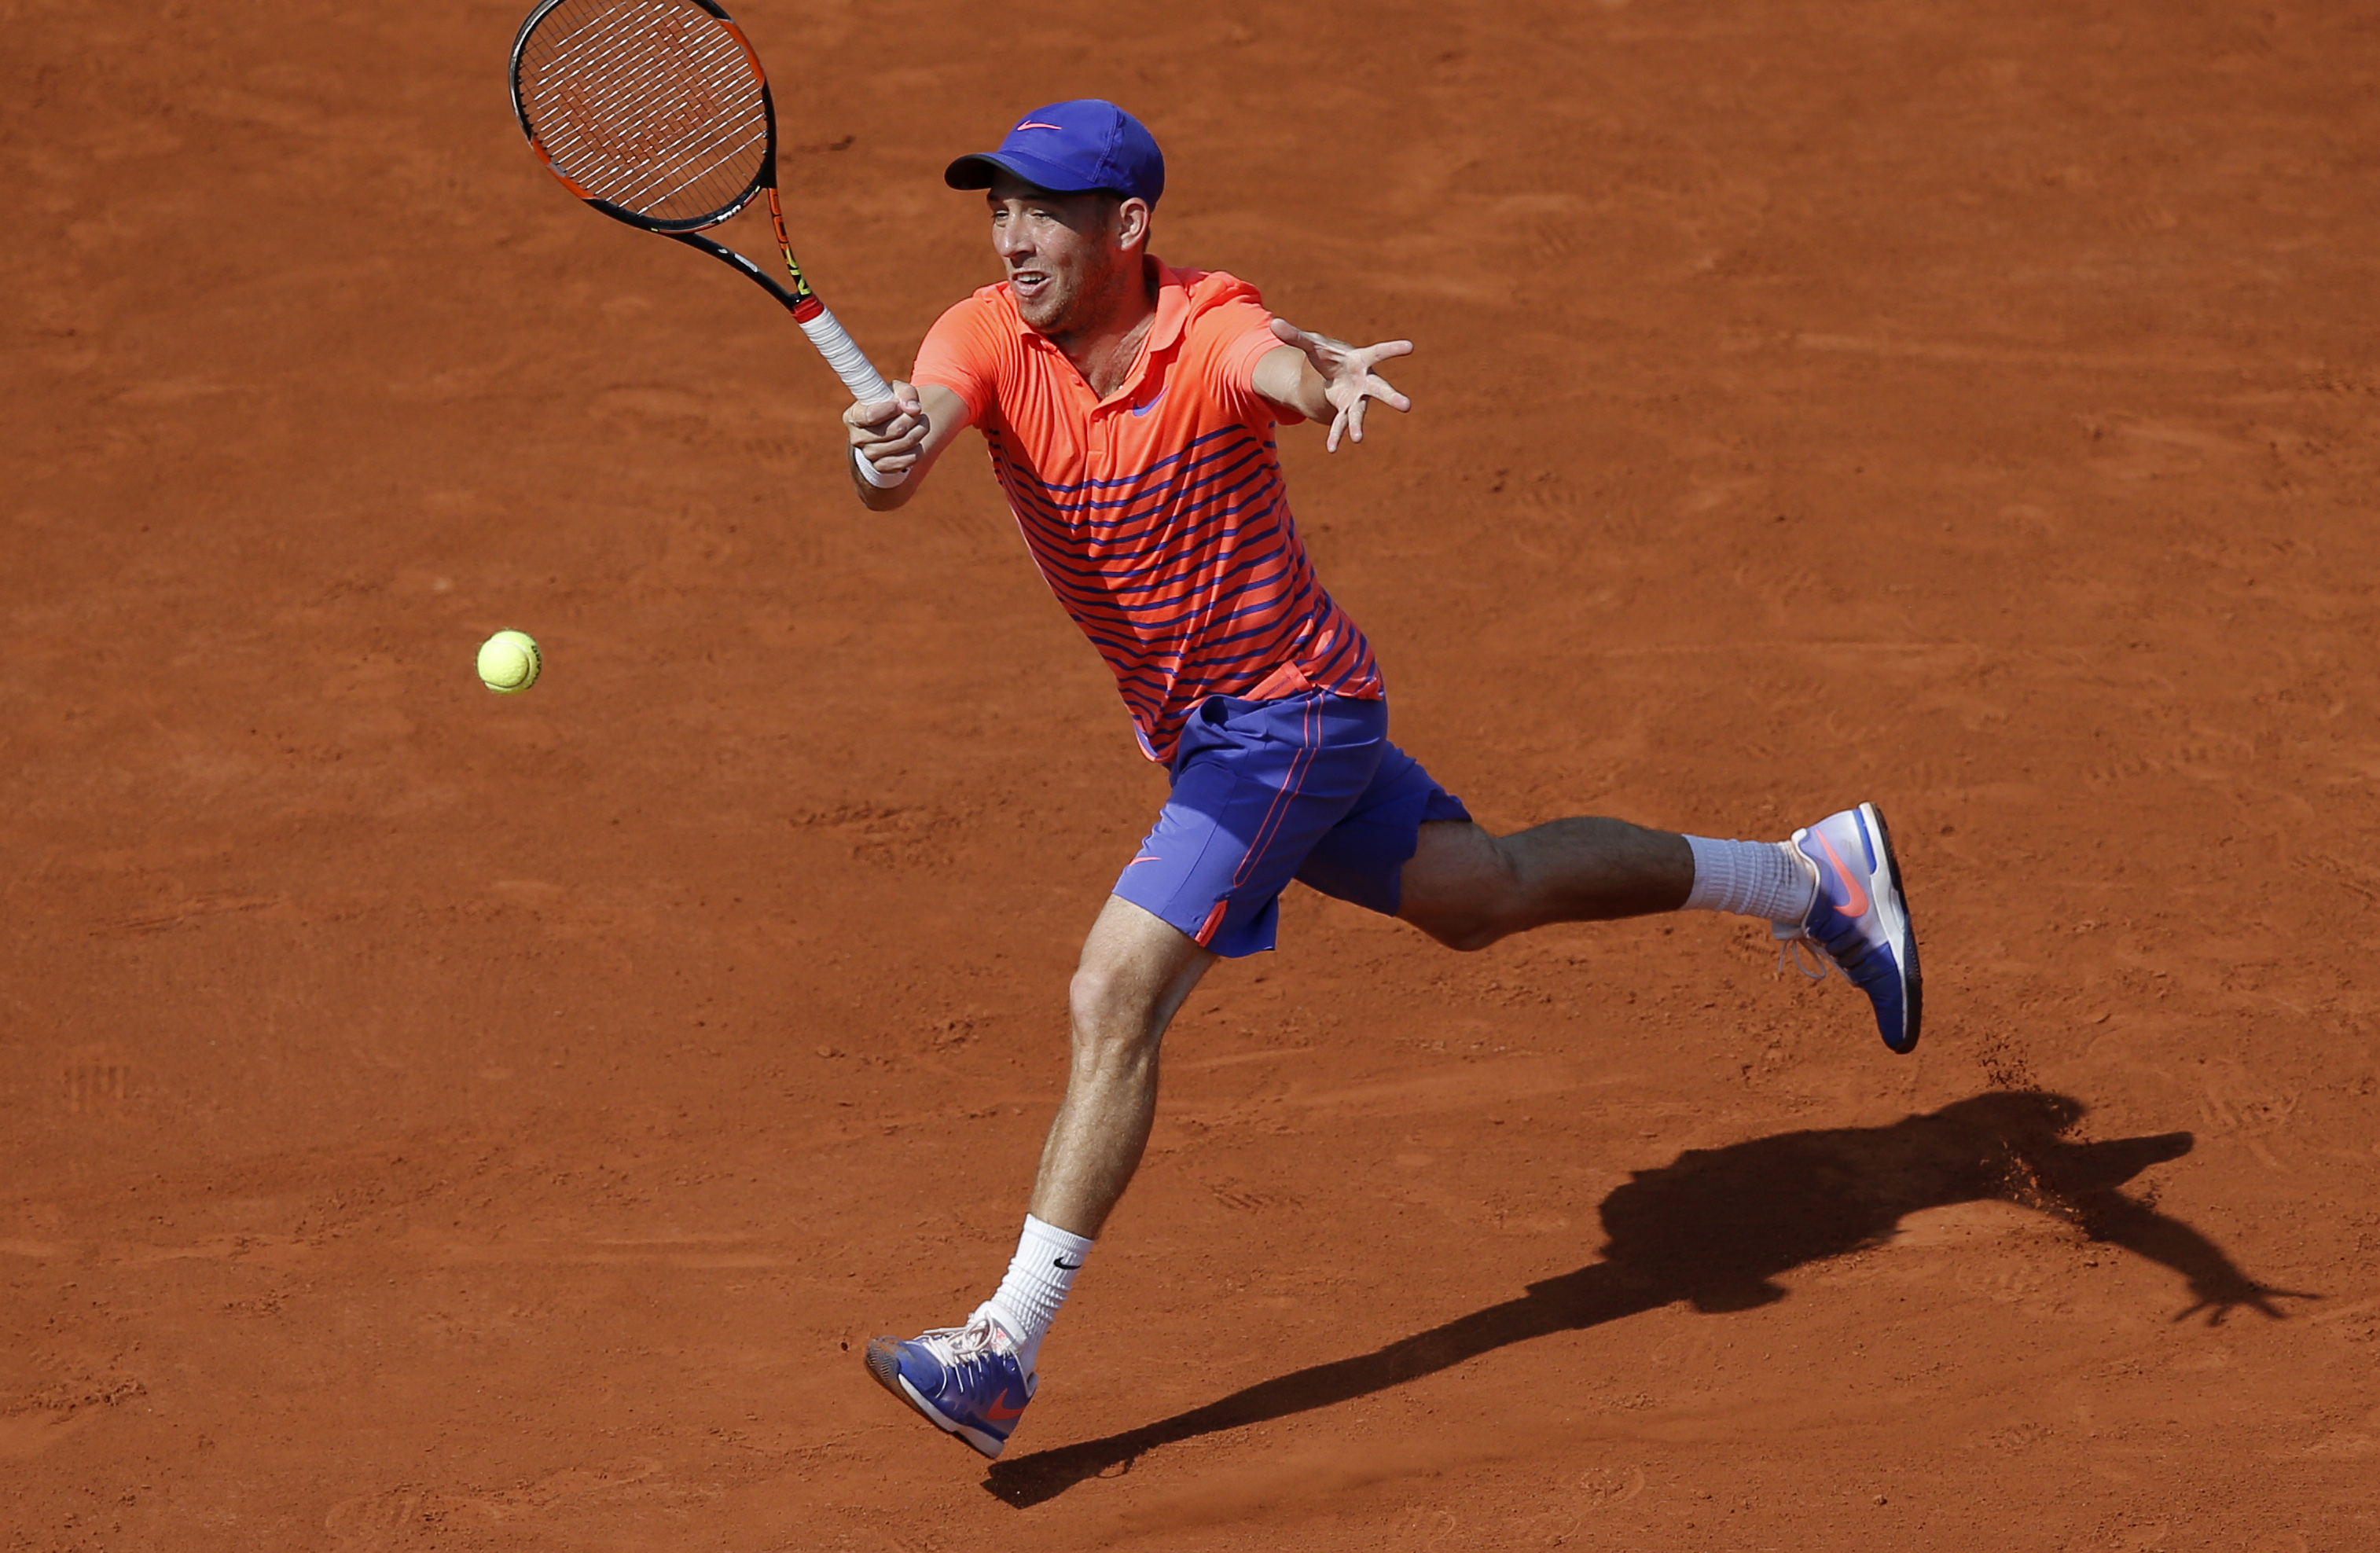 france_tennis_french_open-4803297c108643_r6434.jpeg